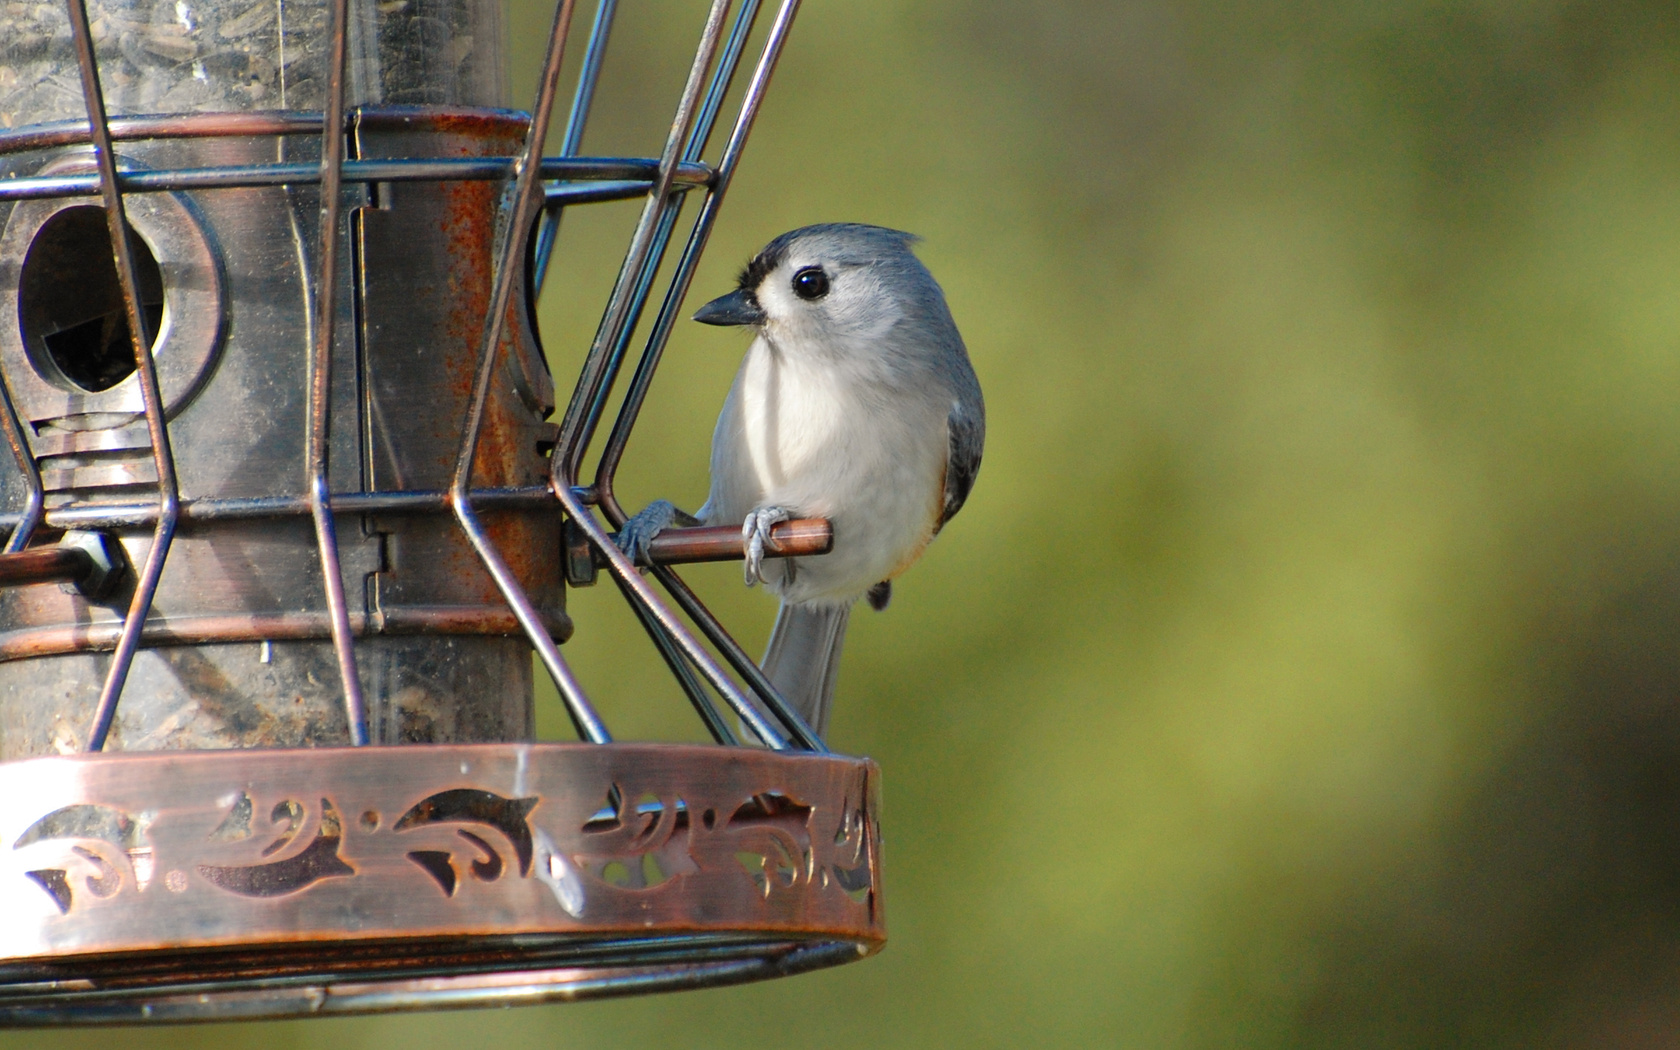 Suzanne Britton Nature Photography: Tufted Titmouse 2